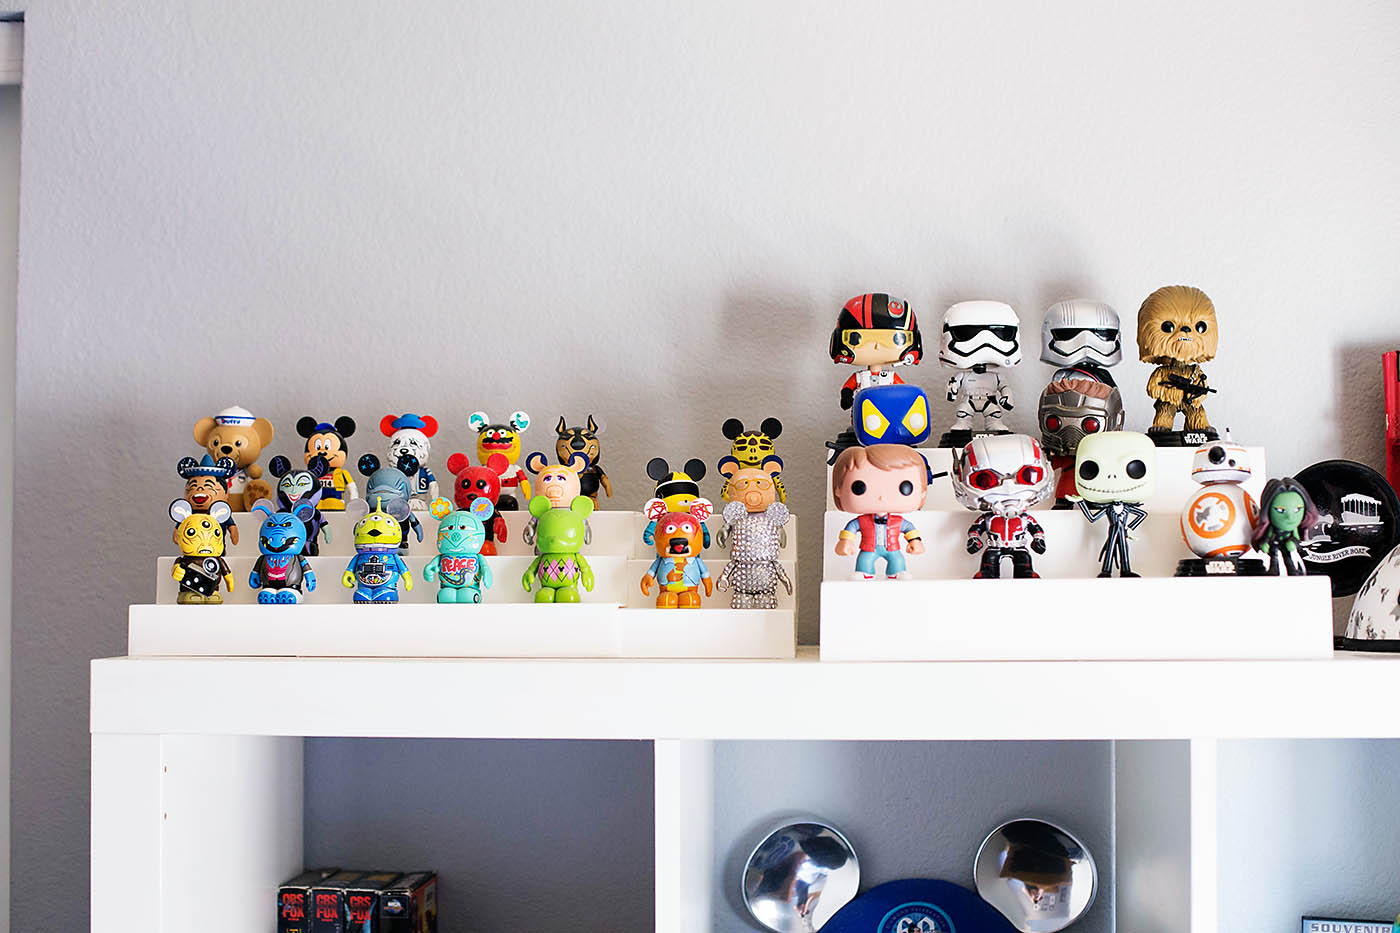 Inexpensive expandable storage for collectables or toys